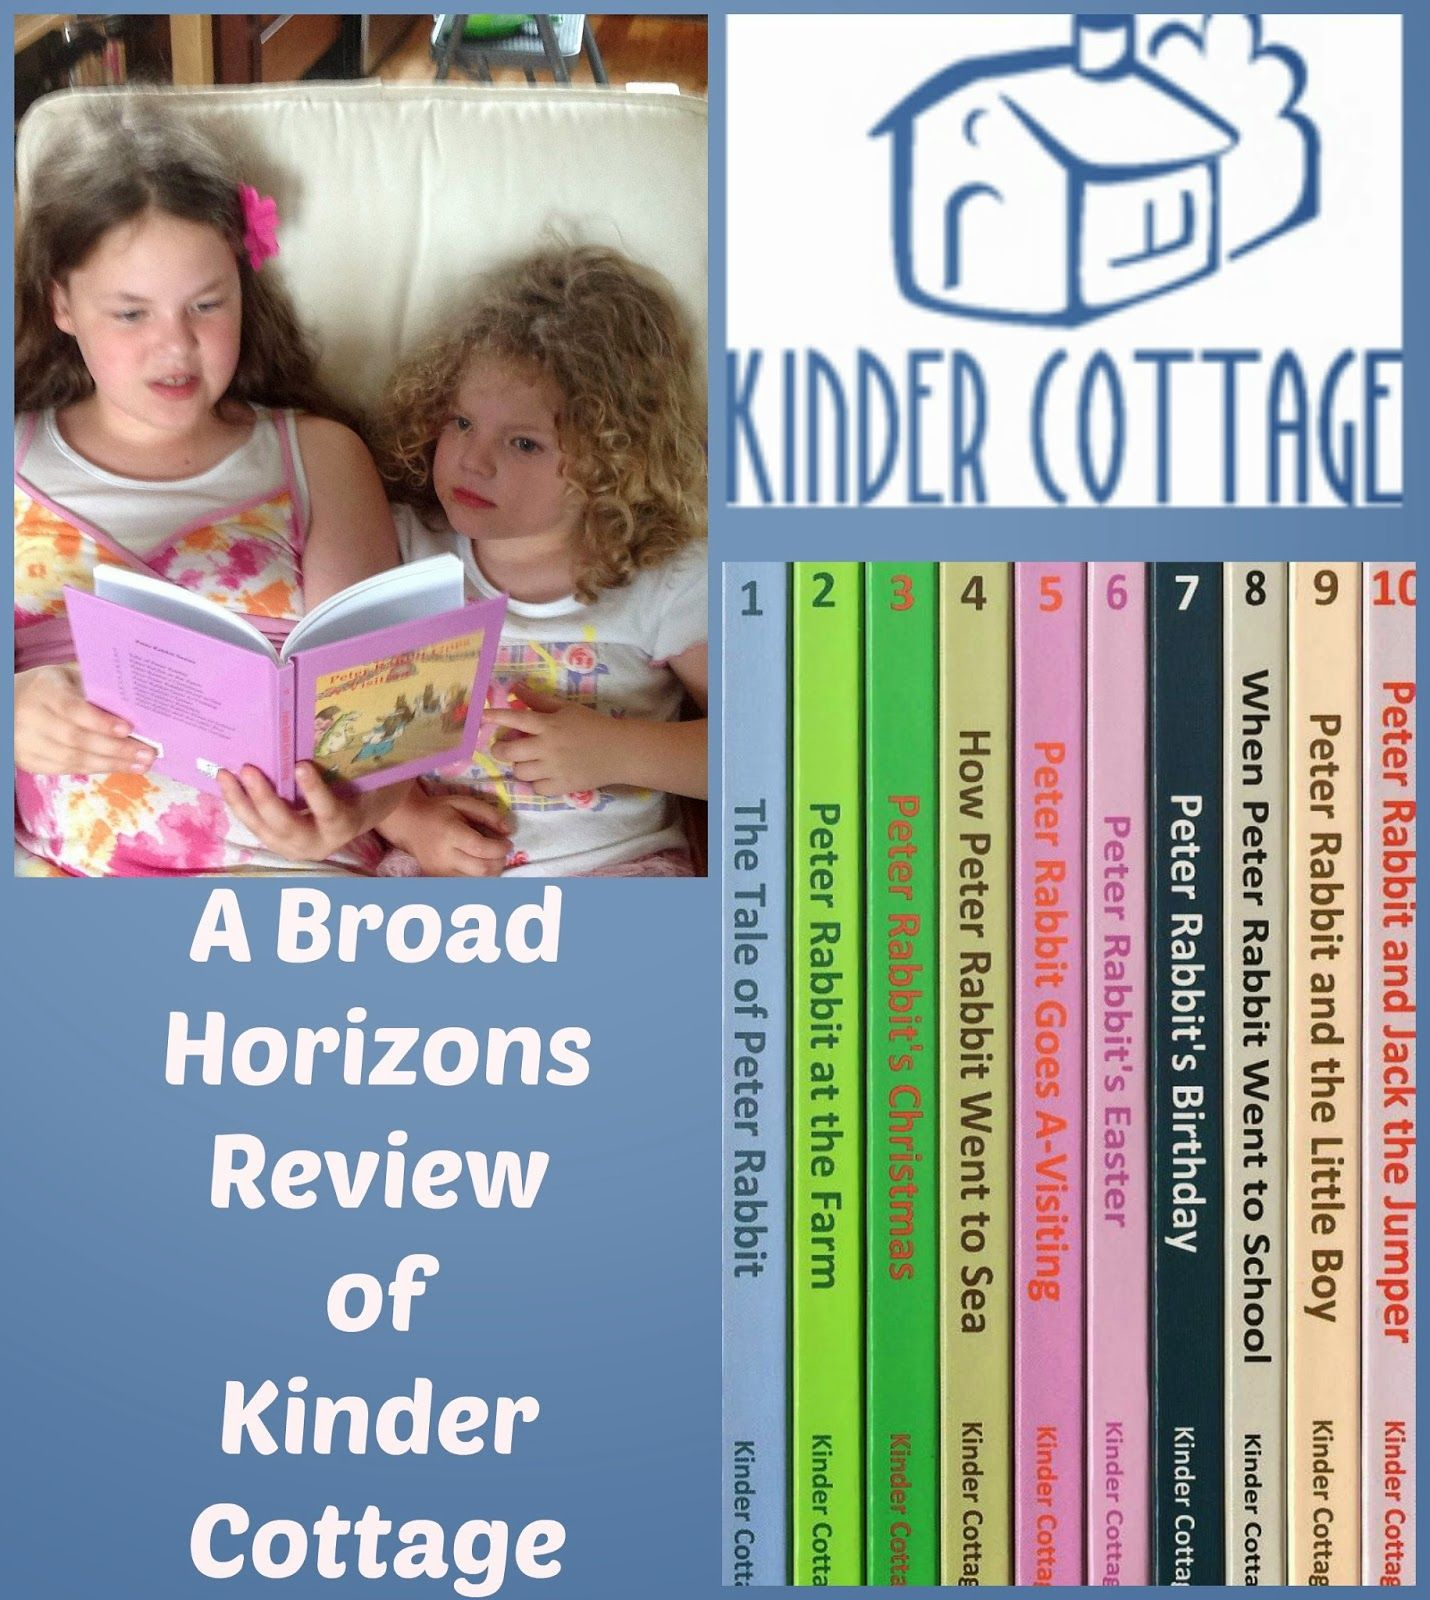 Schoolhouse Review Crew Kinder Cottage With Images